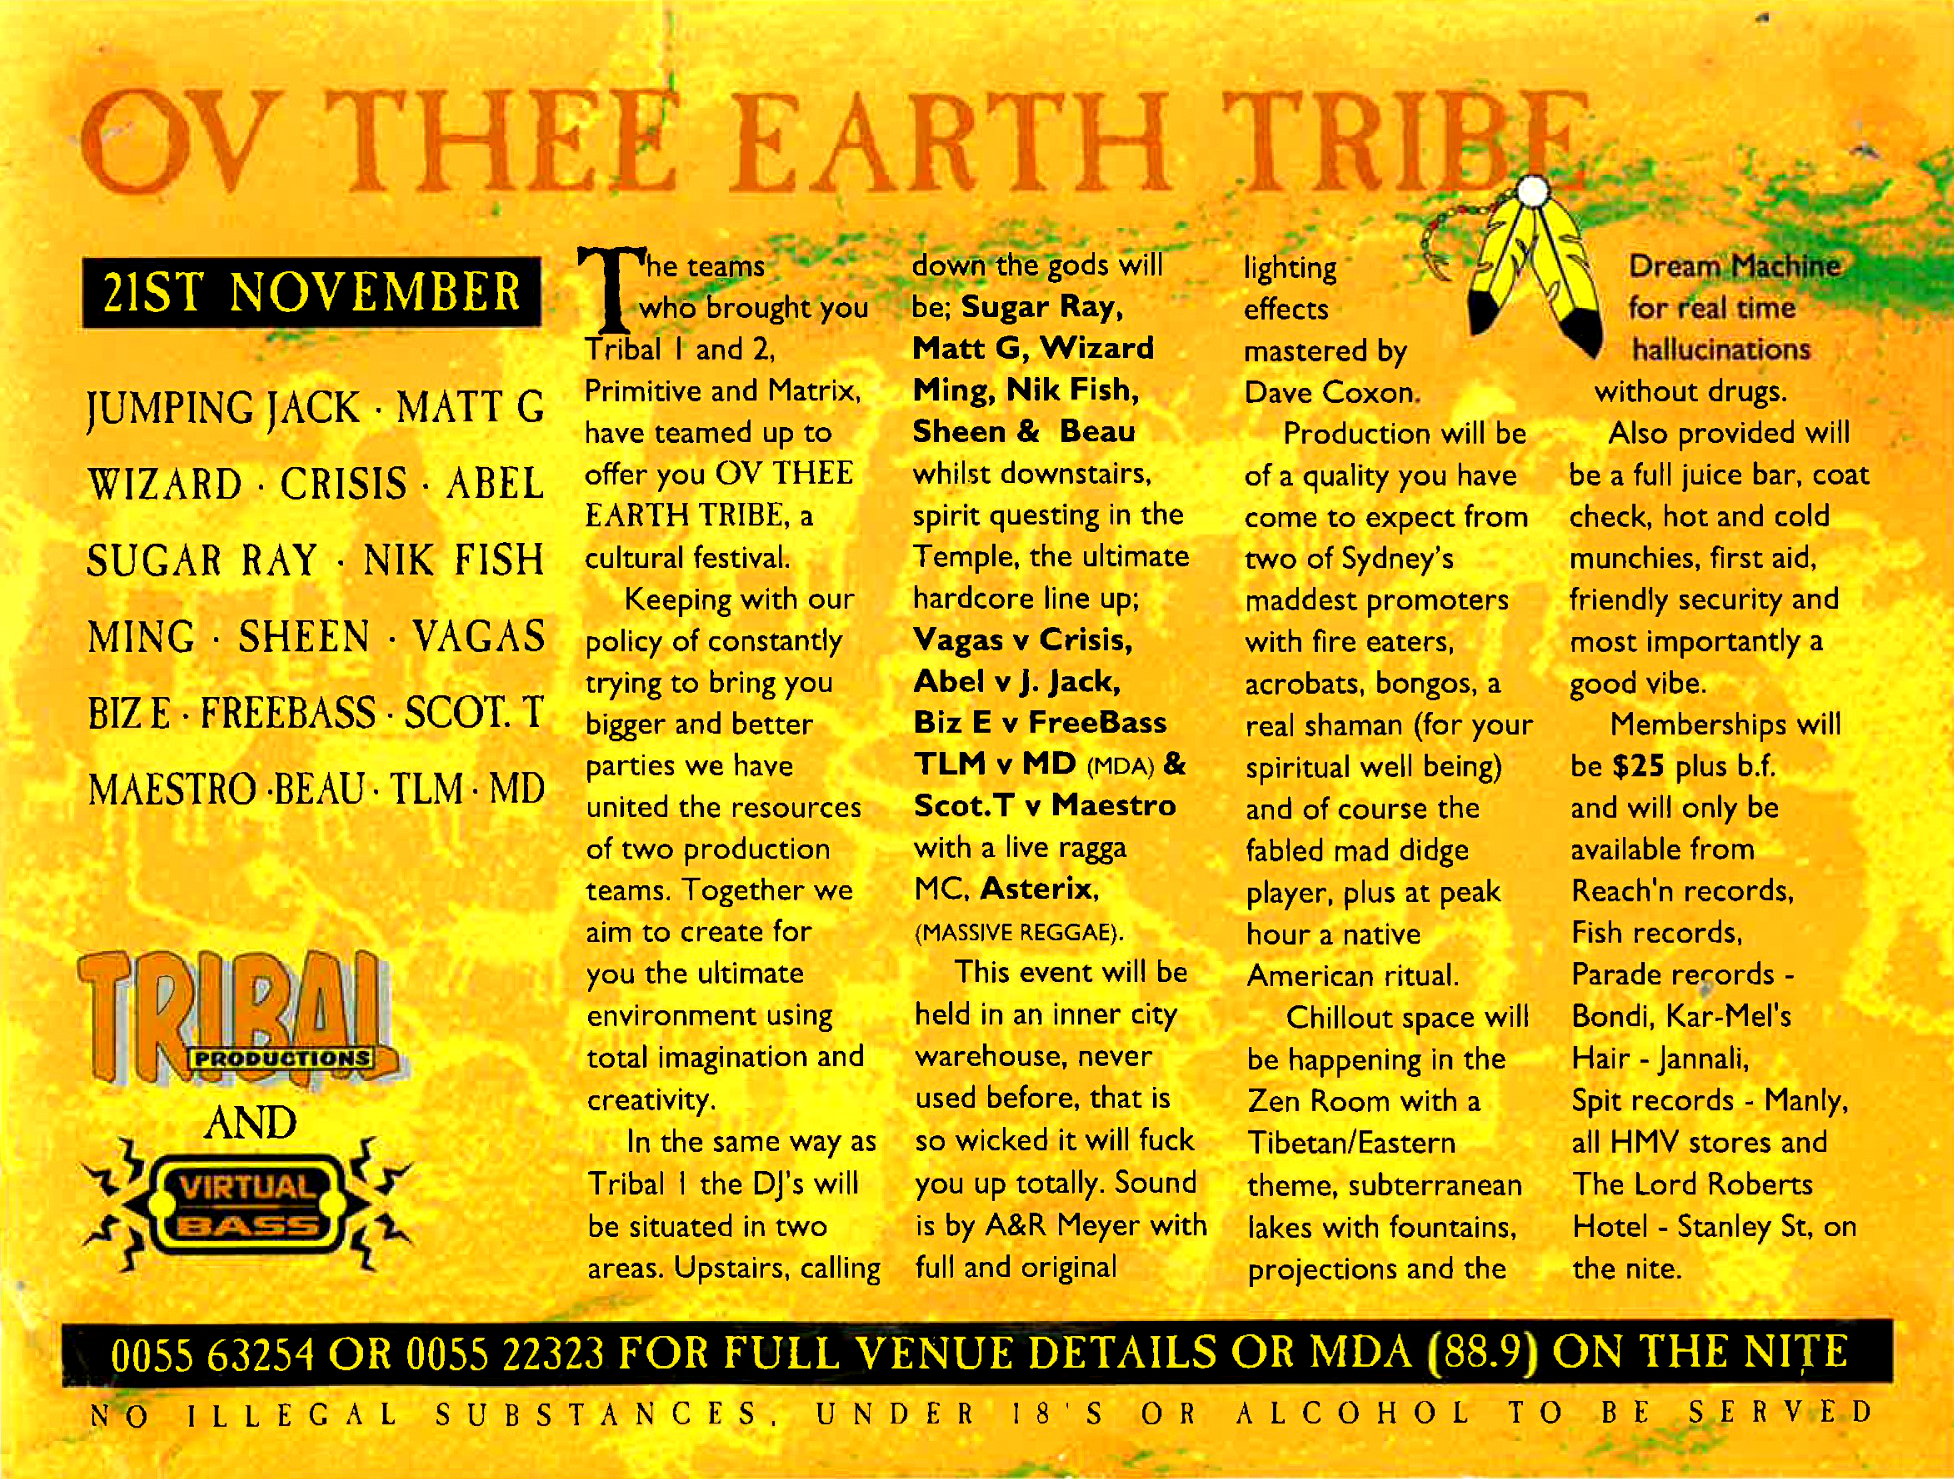 Ov Thee Earth Tribe - Back